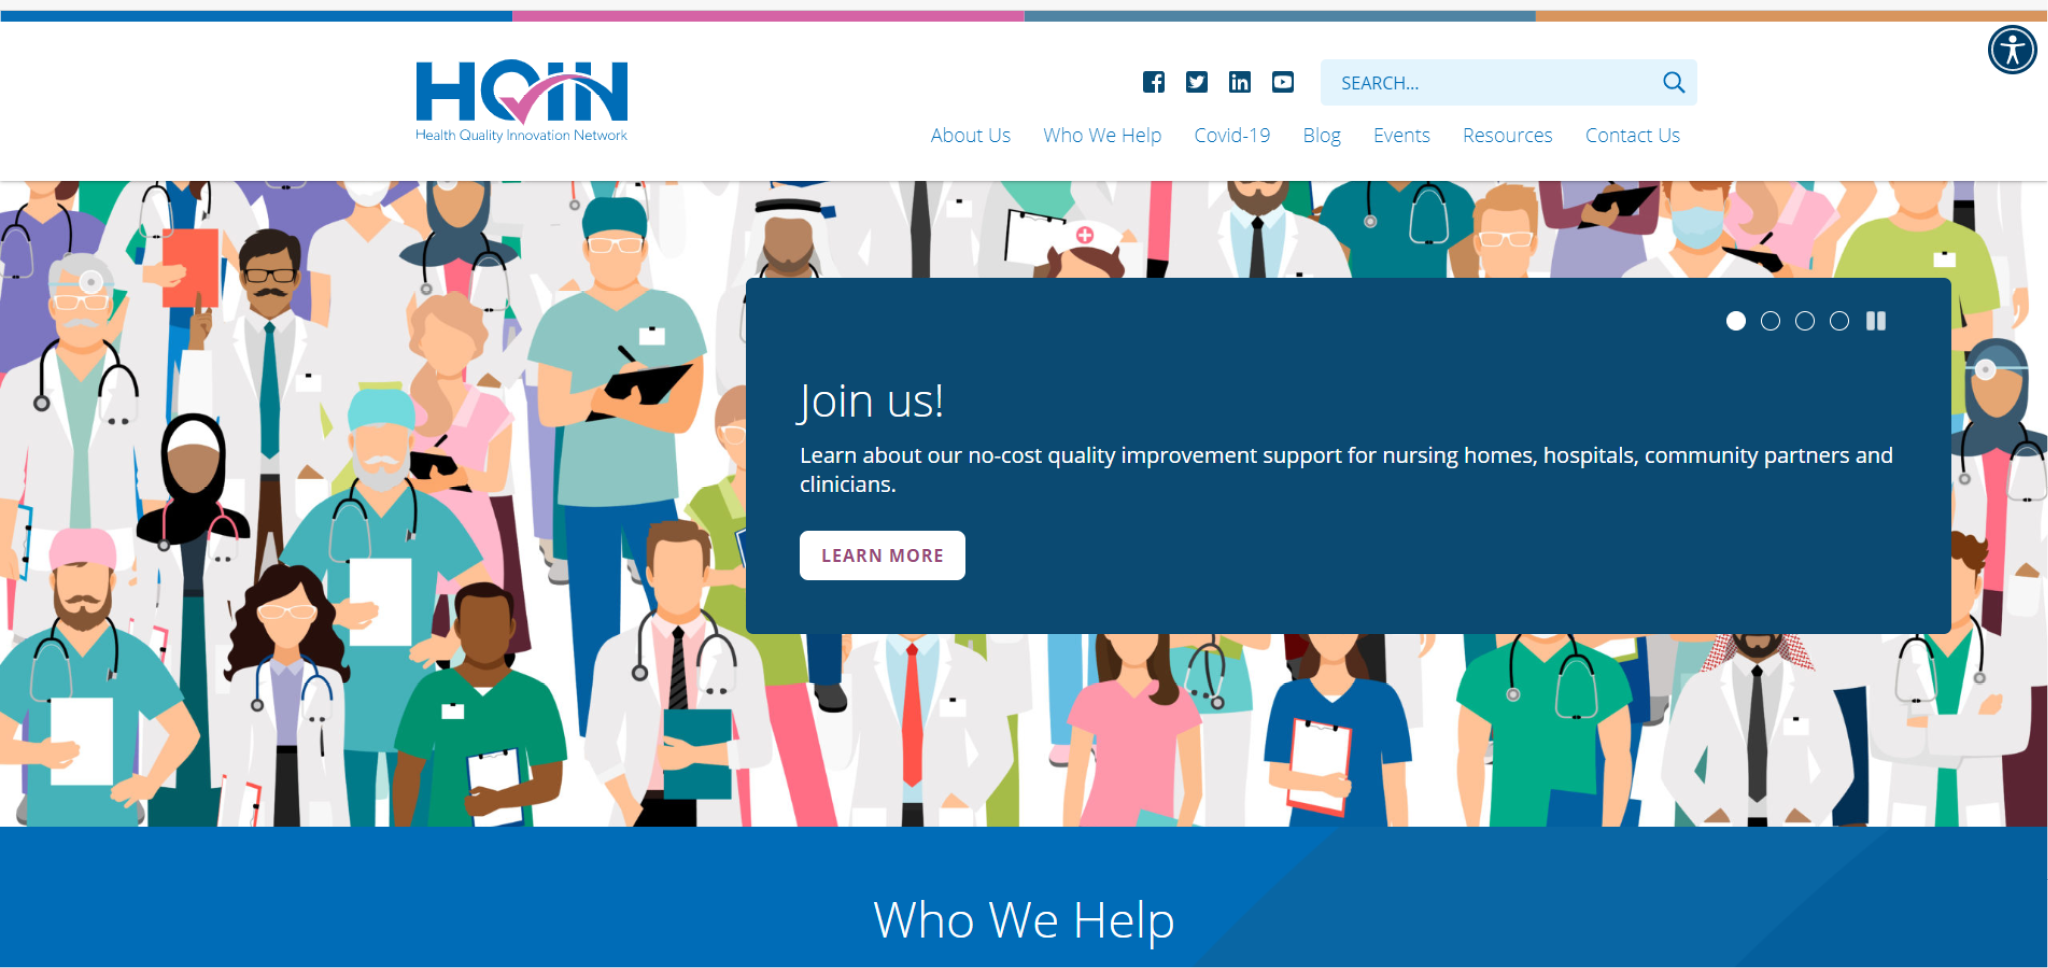 Screenshot of the HQIN website home page